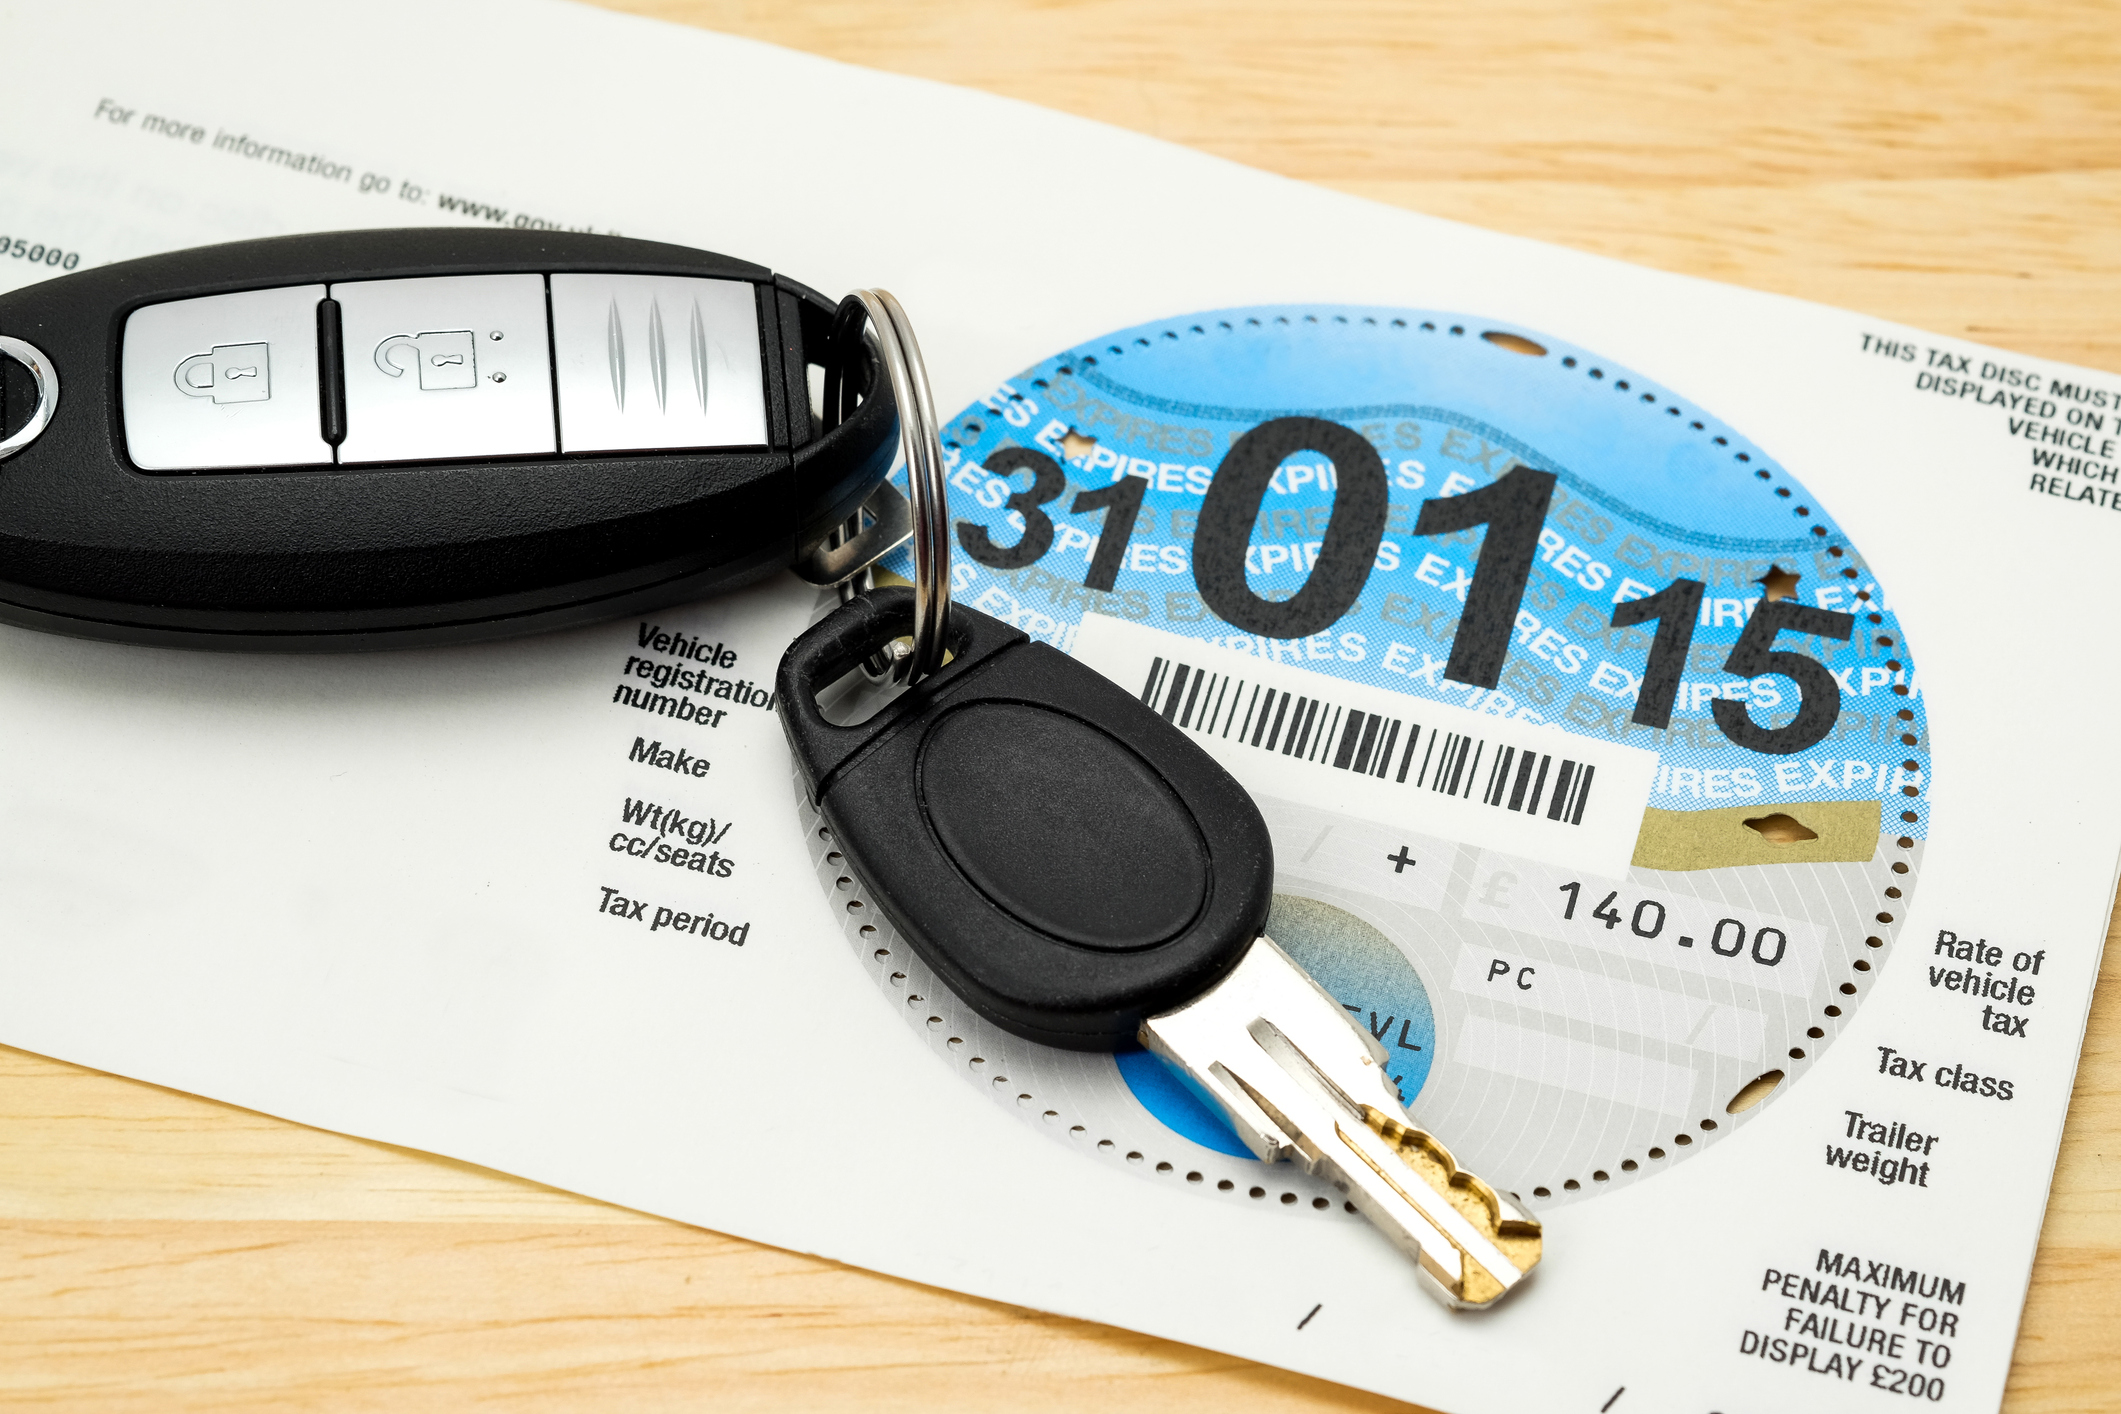 A UK Car Road Tax disc issued by the DVLA with a car key and electronic central locking remote fob